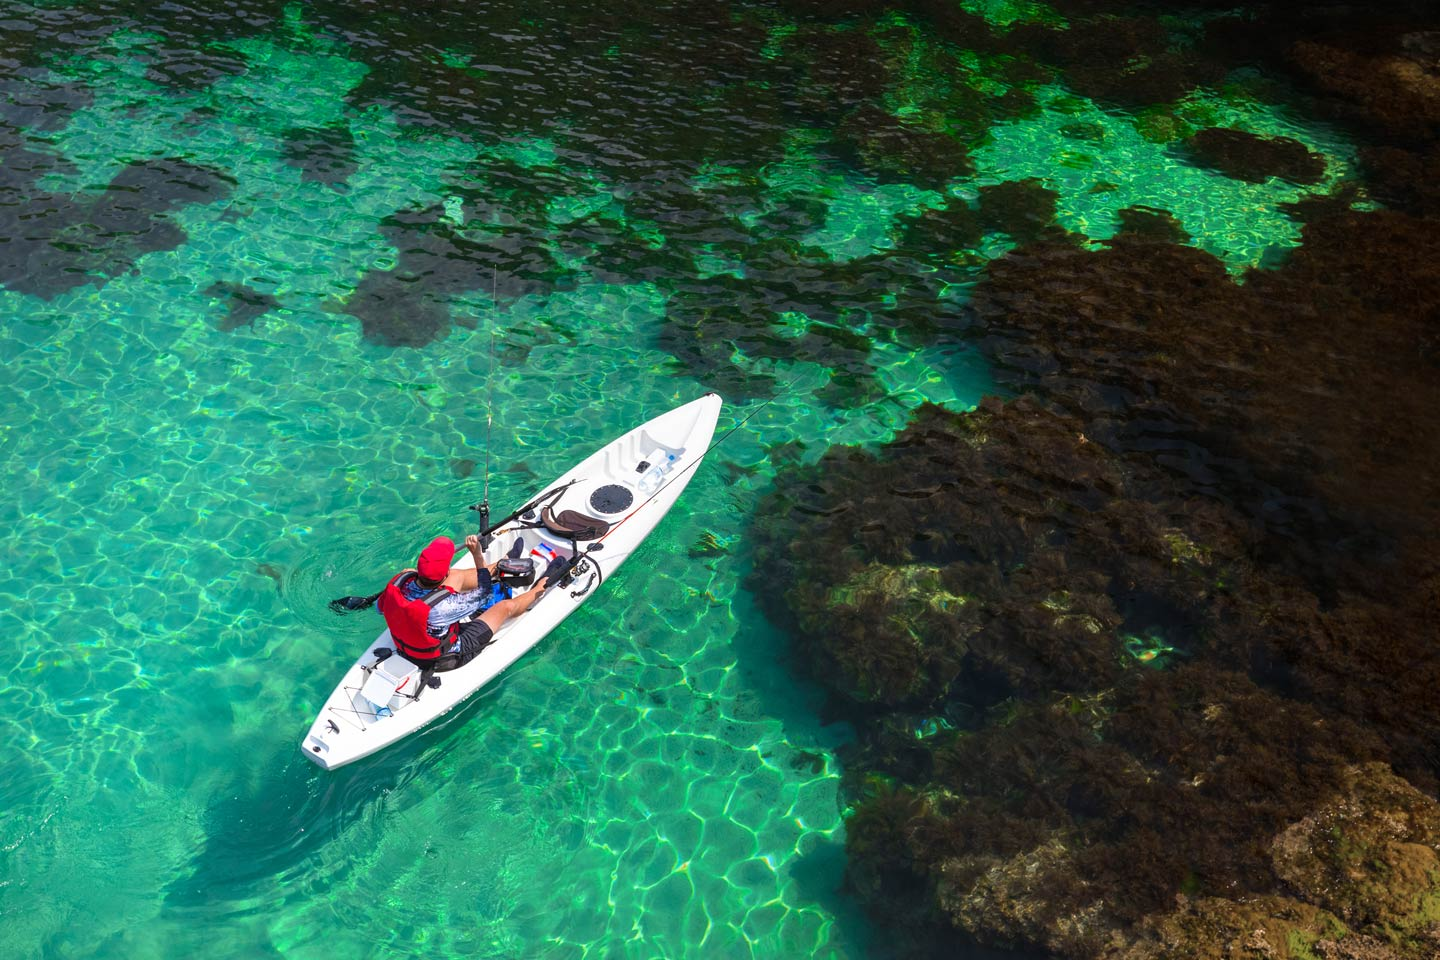 Man fishing on a kayak in the sea with clear turquoise water